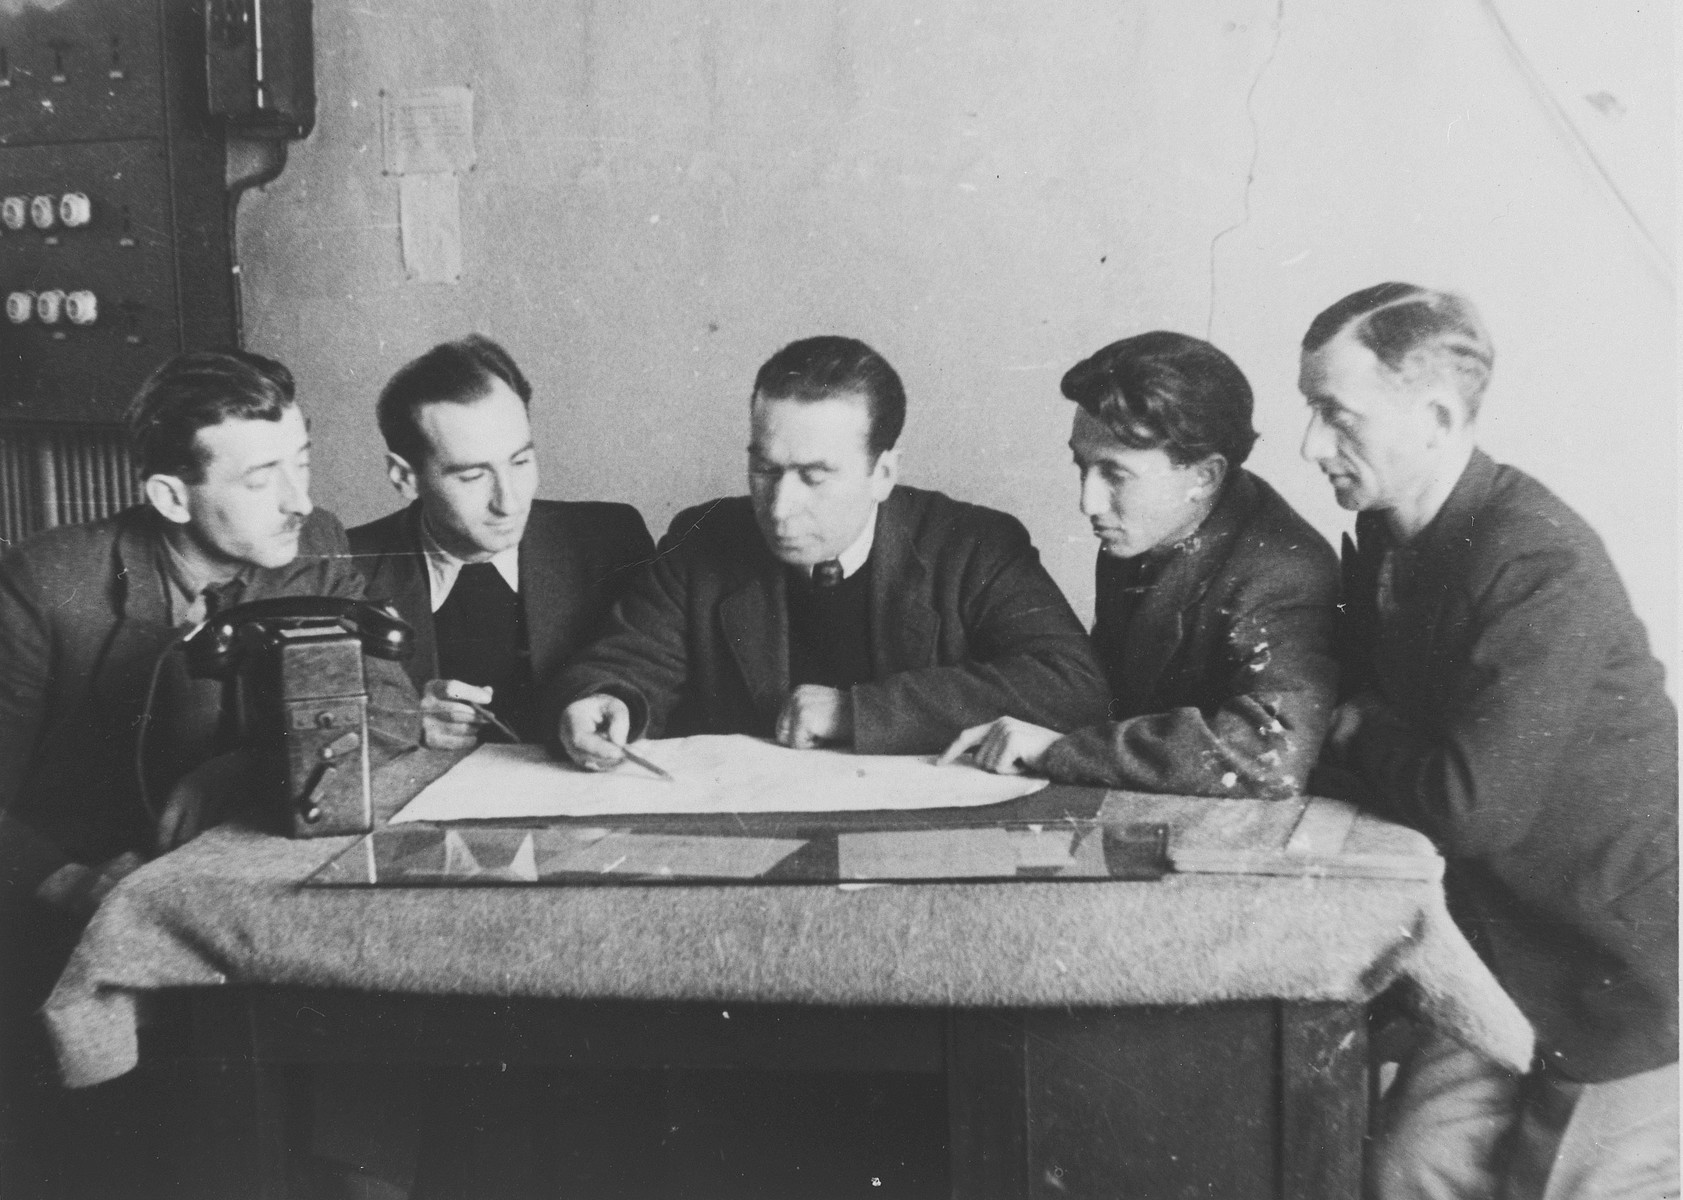 Edward Cittrons, director of ORT in Neu-Ulm, and four other men examine some plans on a table in his office.